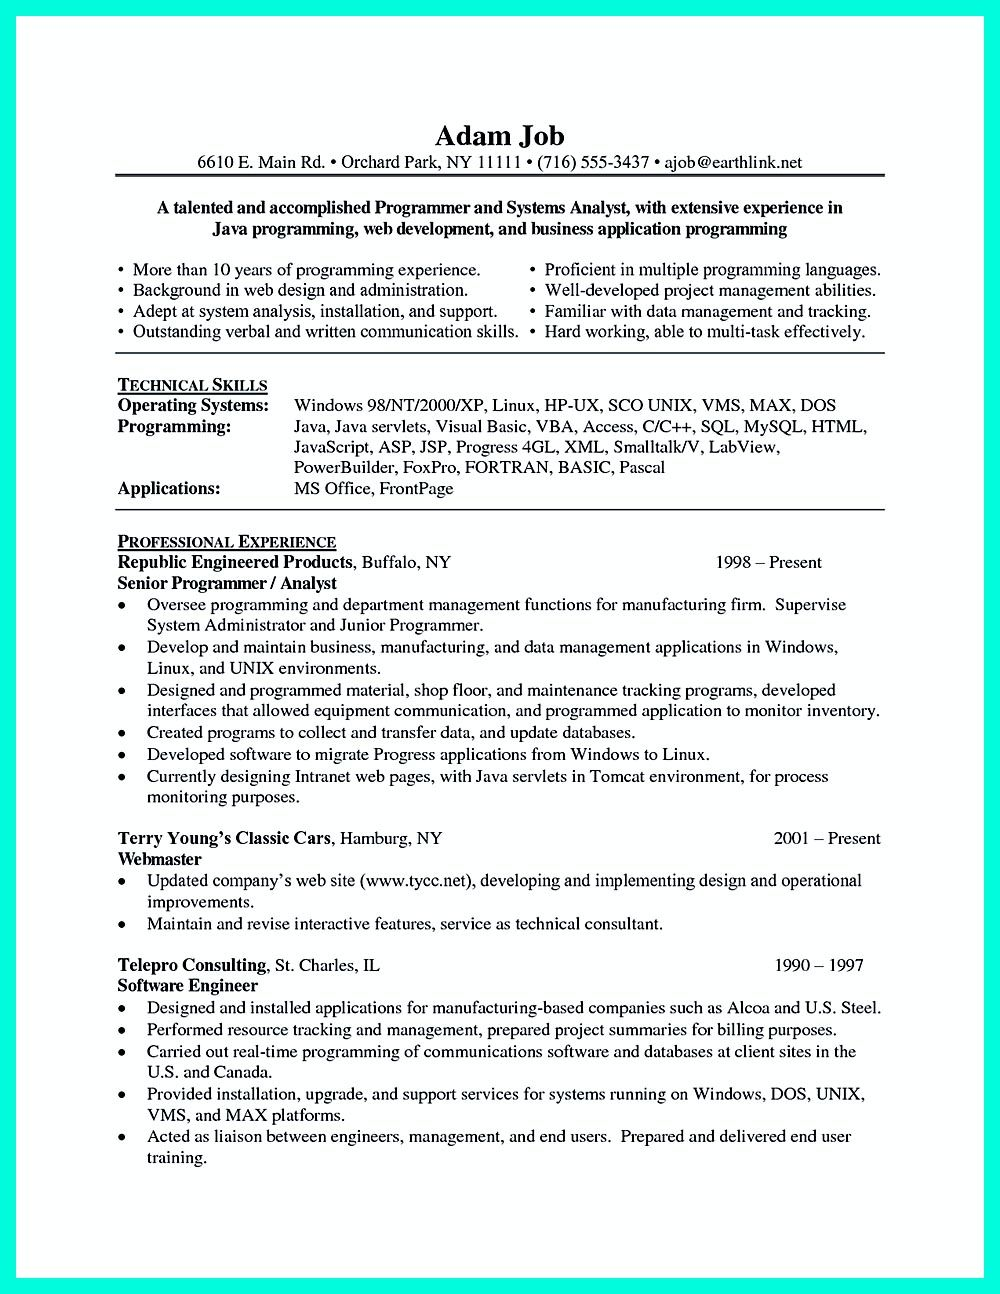 Computer programmer resume has some paragraphs that